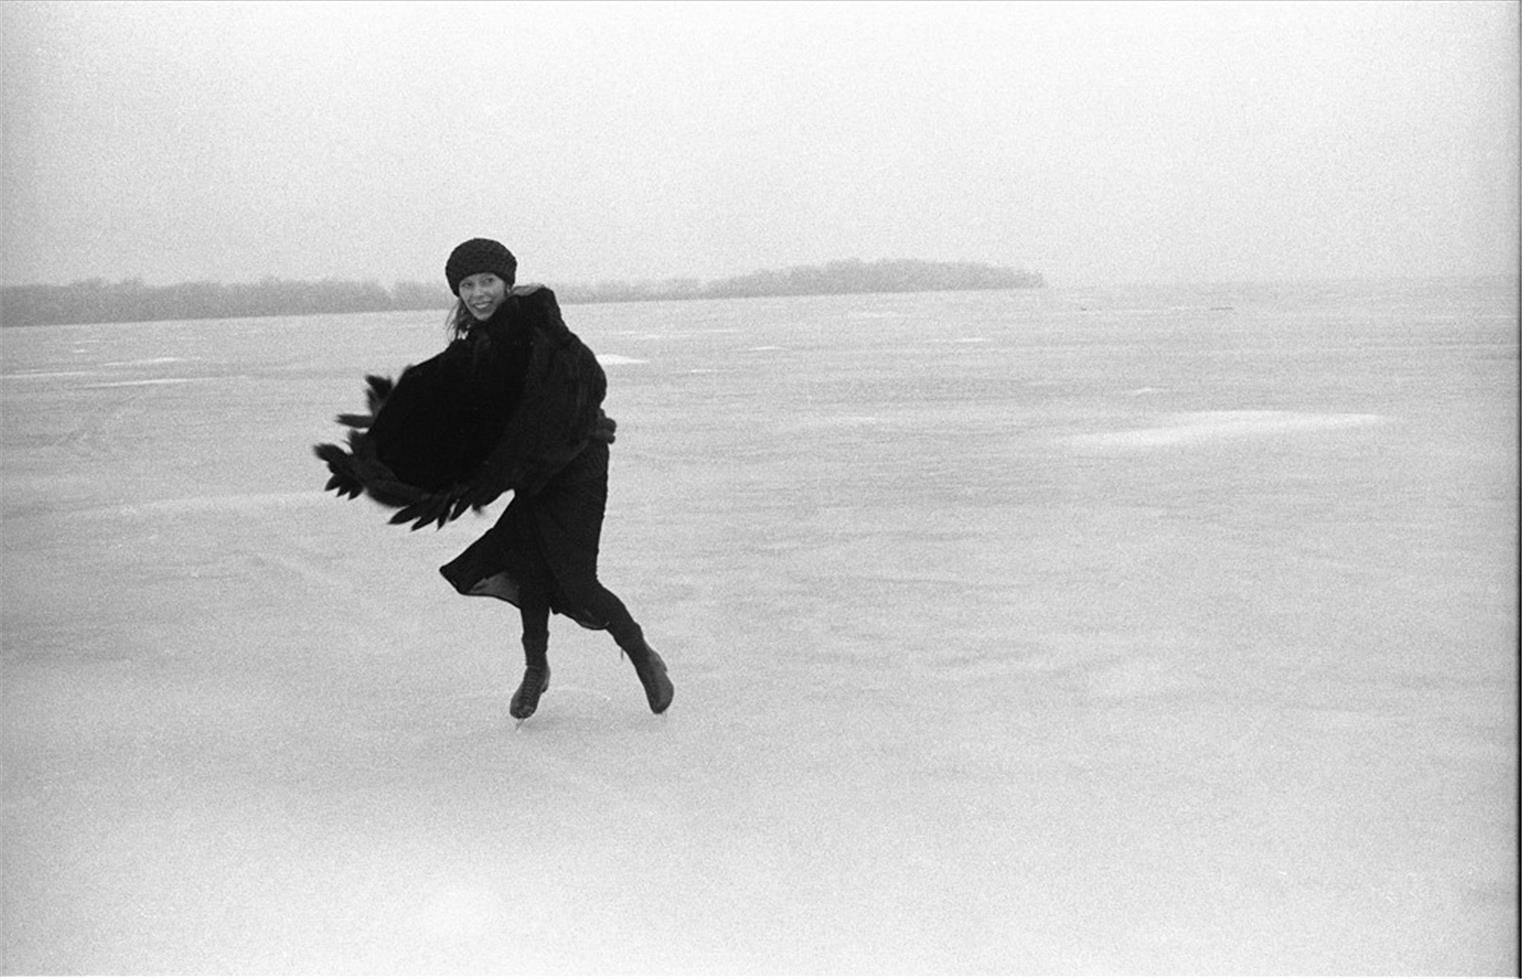 Encounter On Lake Mendota >> Joni Mitchell Skating On Lake Mendota Gatefold For Hejira